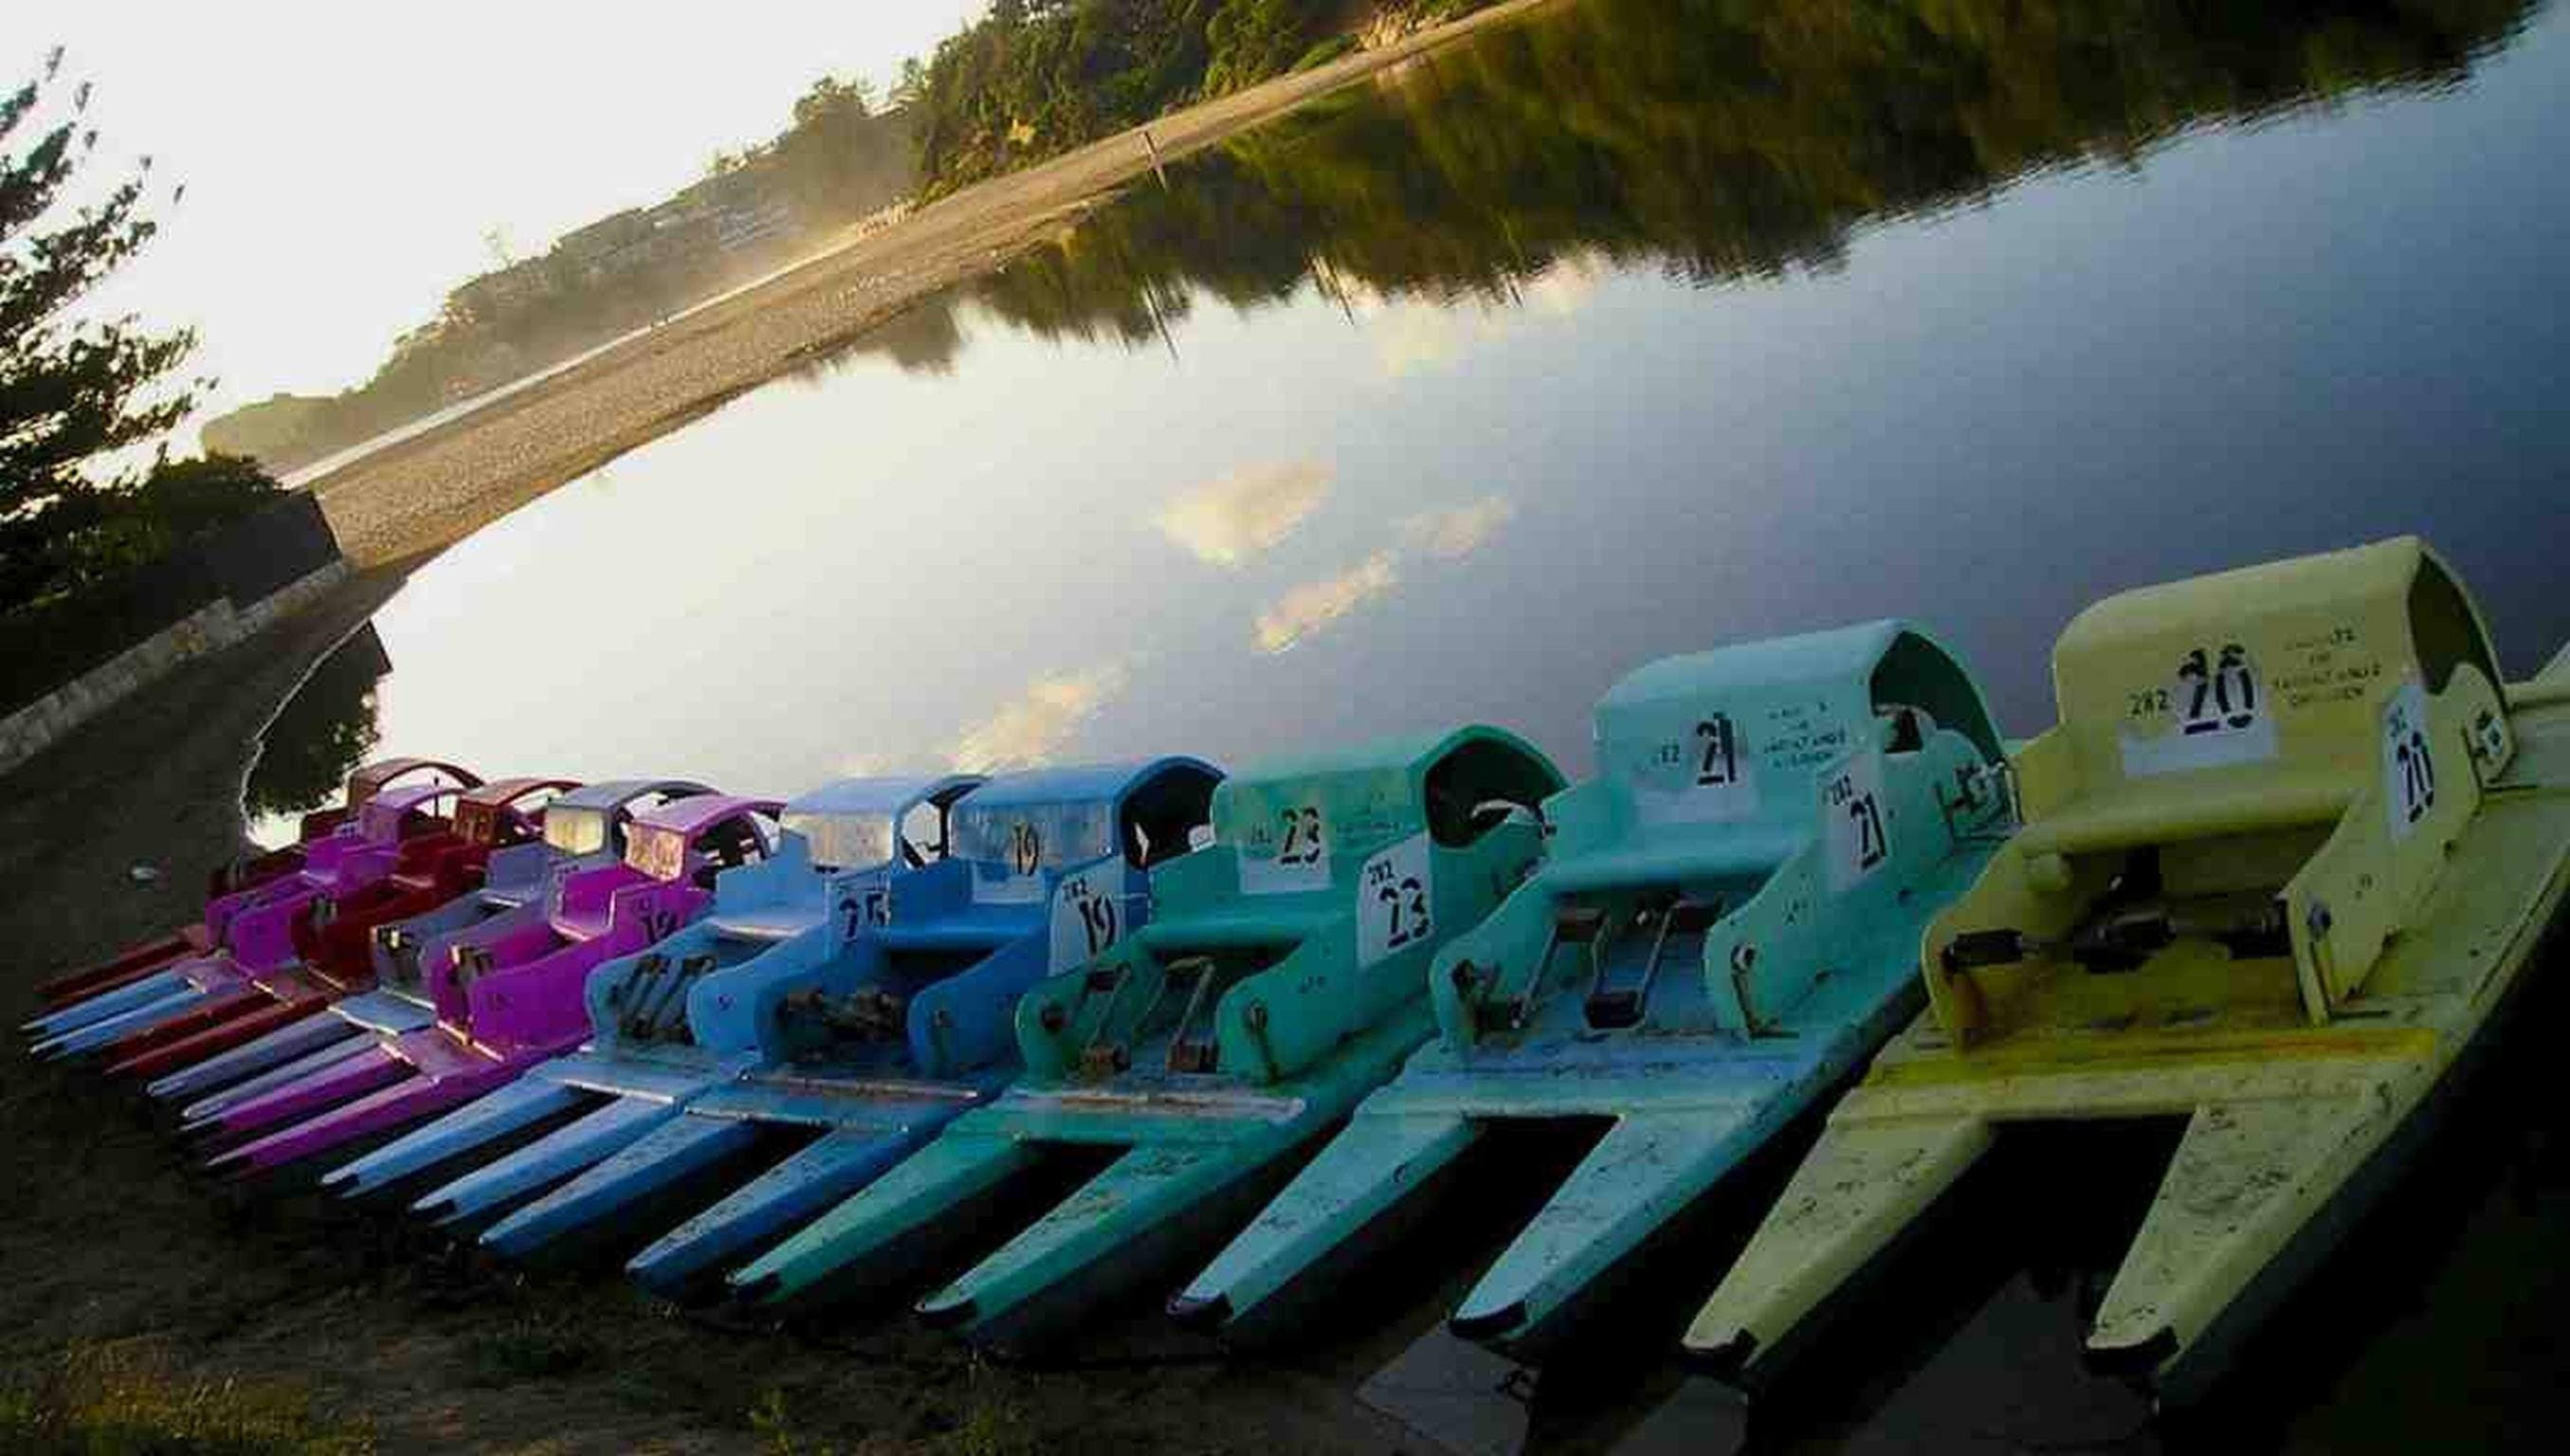 Terrigal Paddle Boats and Stand Up Paddle Boards - QLD Tourism